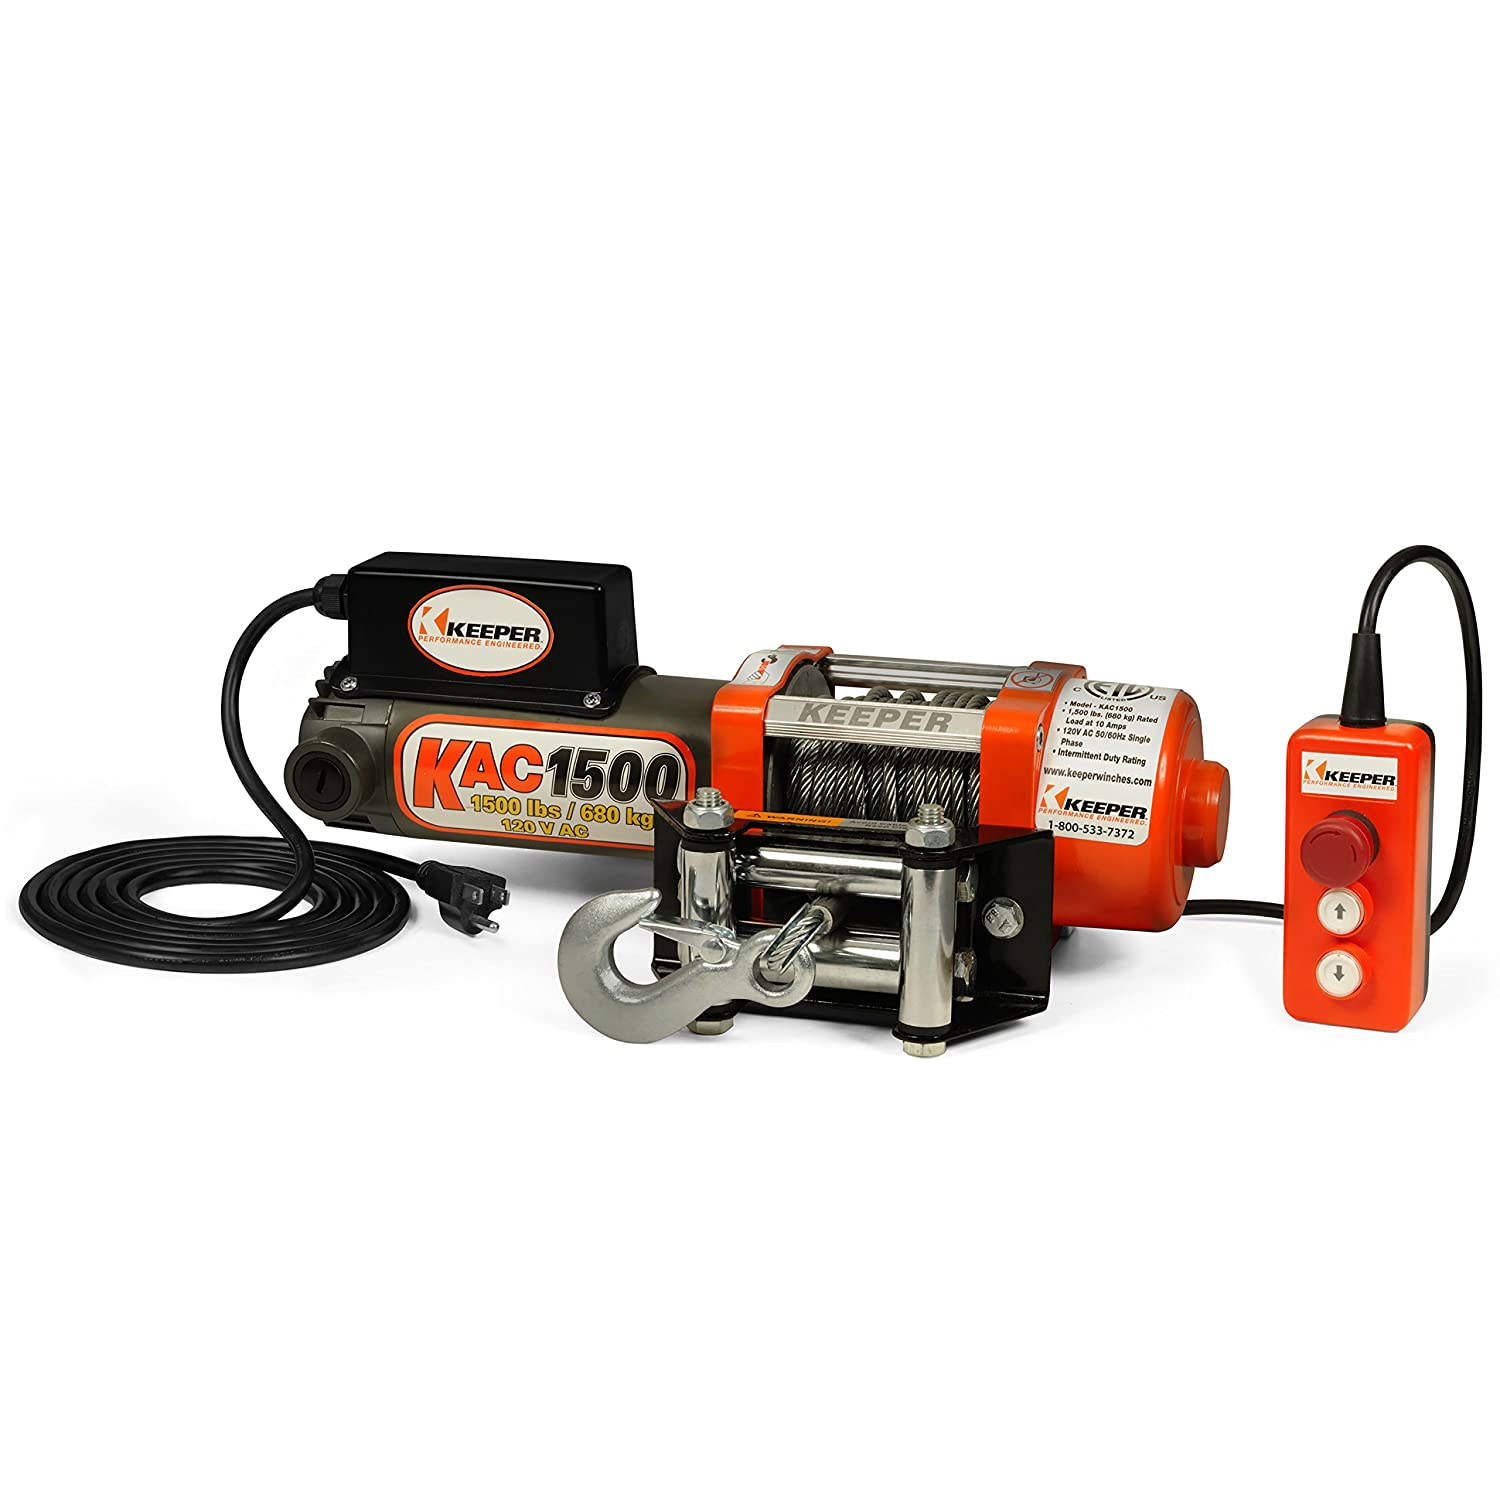 home depot synthetic rope with Superwinch Tiger Shark Winch on Superwinch Tiger Shark Winch also 16889034 also Superwinch Lt4000 Wiring Diagram moreover BARRICADE 9500LB WINCH W 2F SYNTHETIC ROPE  2887 17 WRANGLER YJ 2C TJ  26 JK 29 also blank.